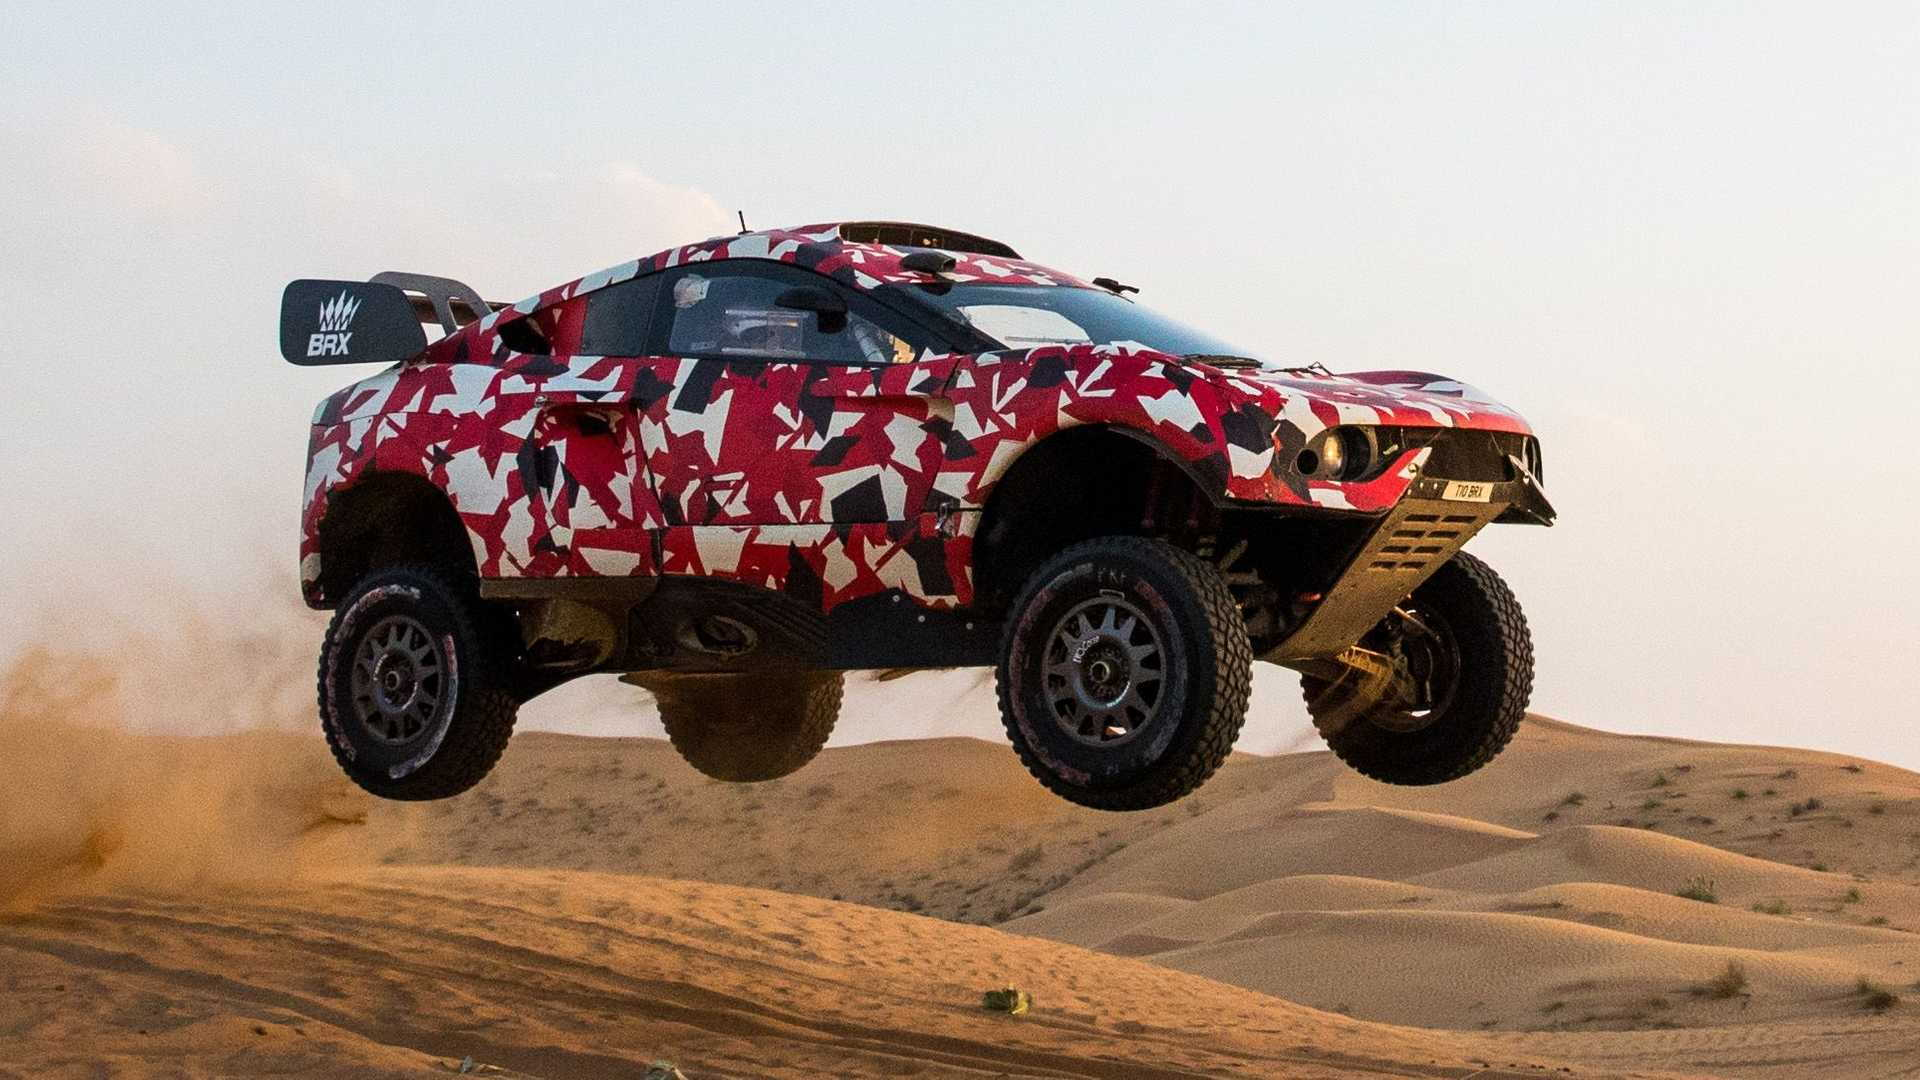 2021 BRX Hunter Dakar Rally T1 race car